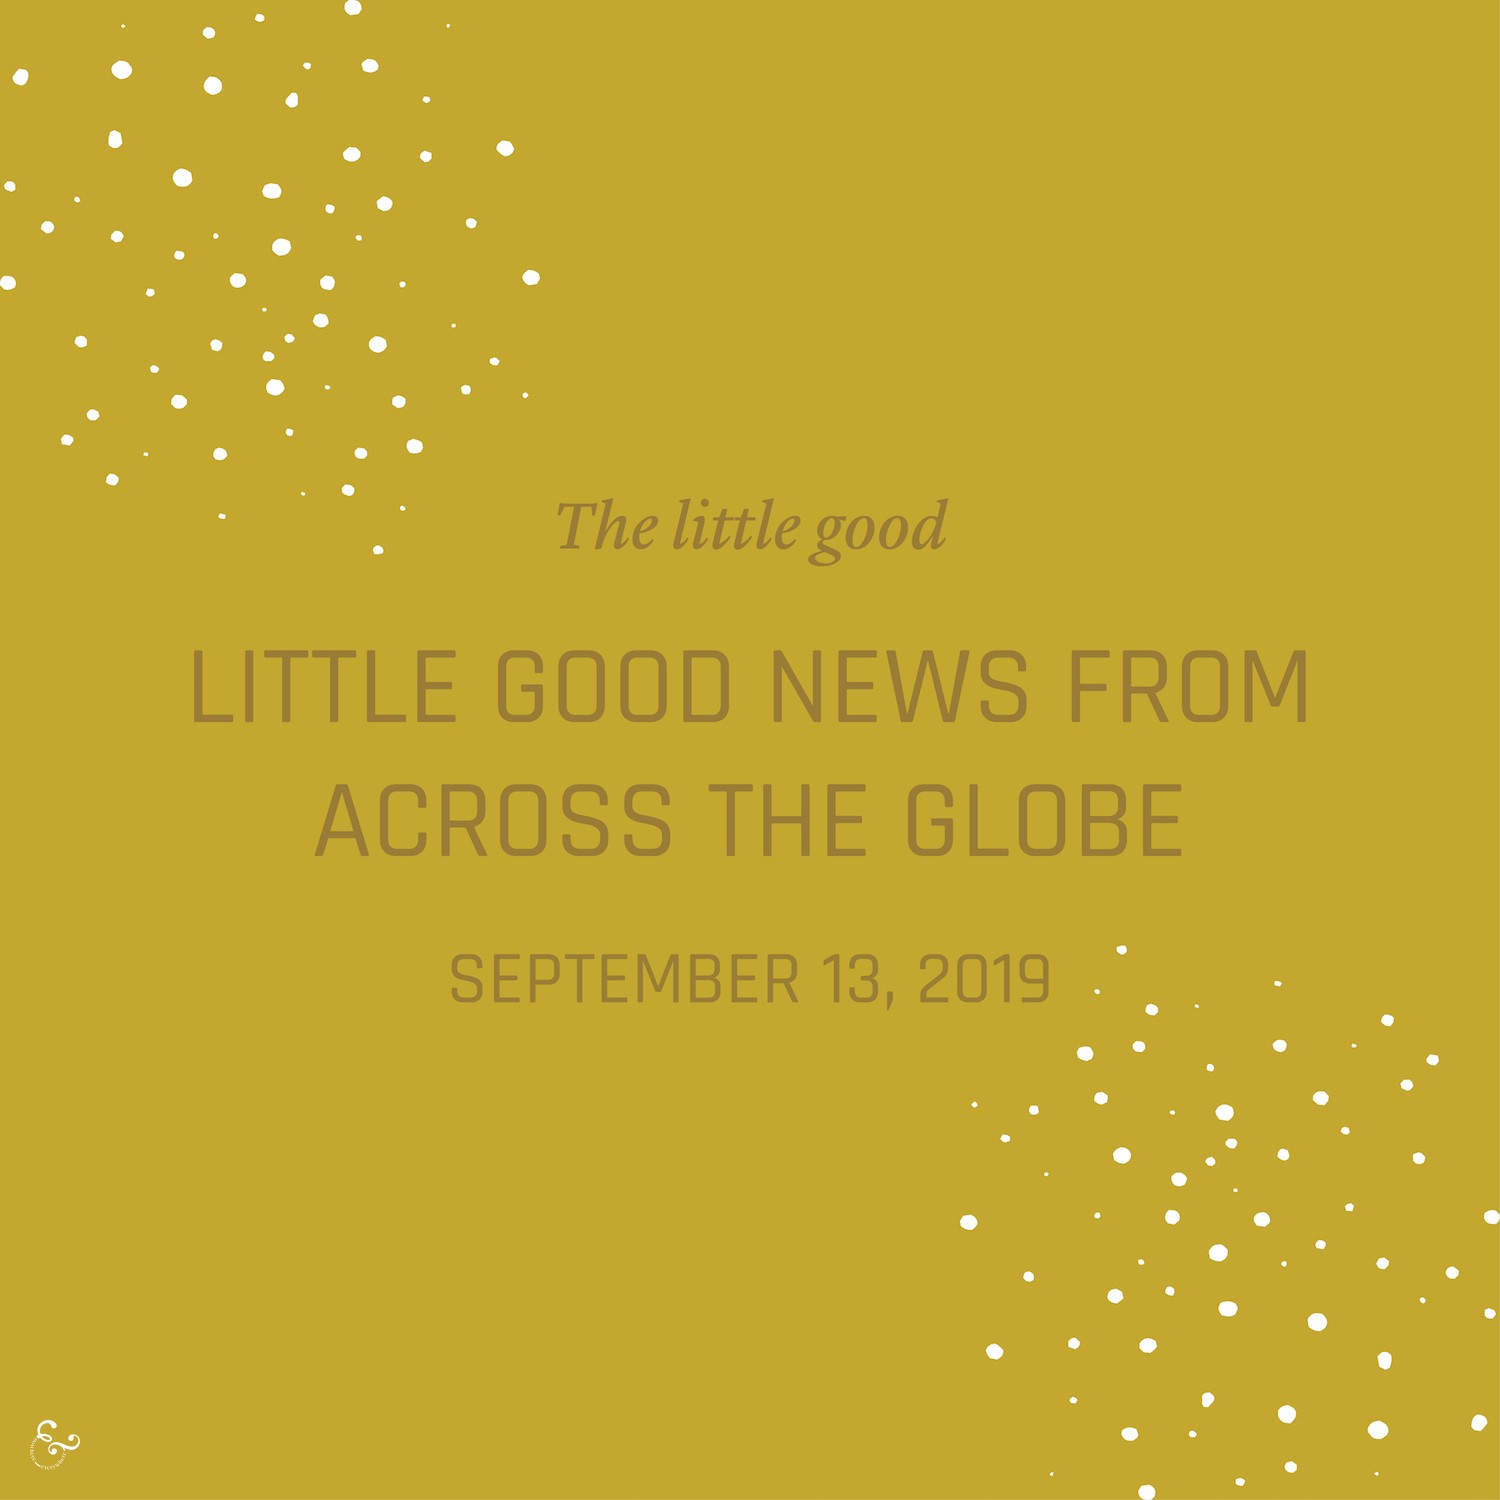 Good Happy Environment Eco News of the Week - Nowhere & Everywhere Good News Stories 2019